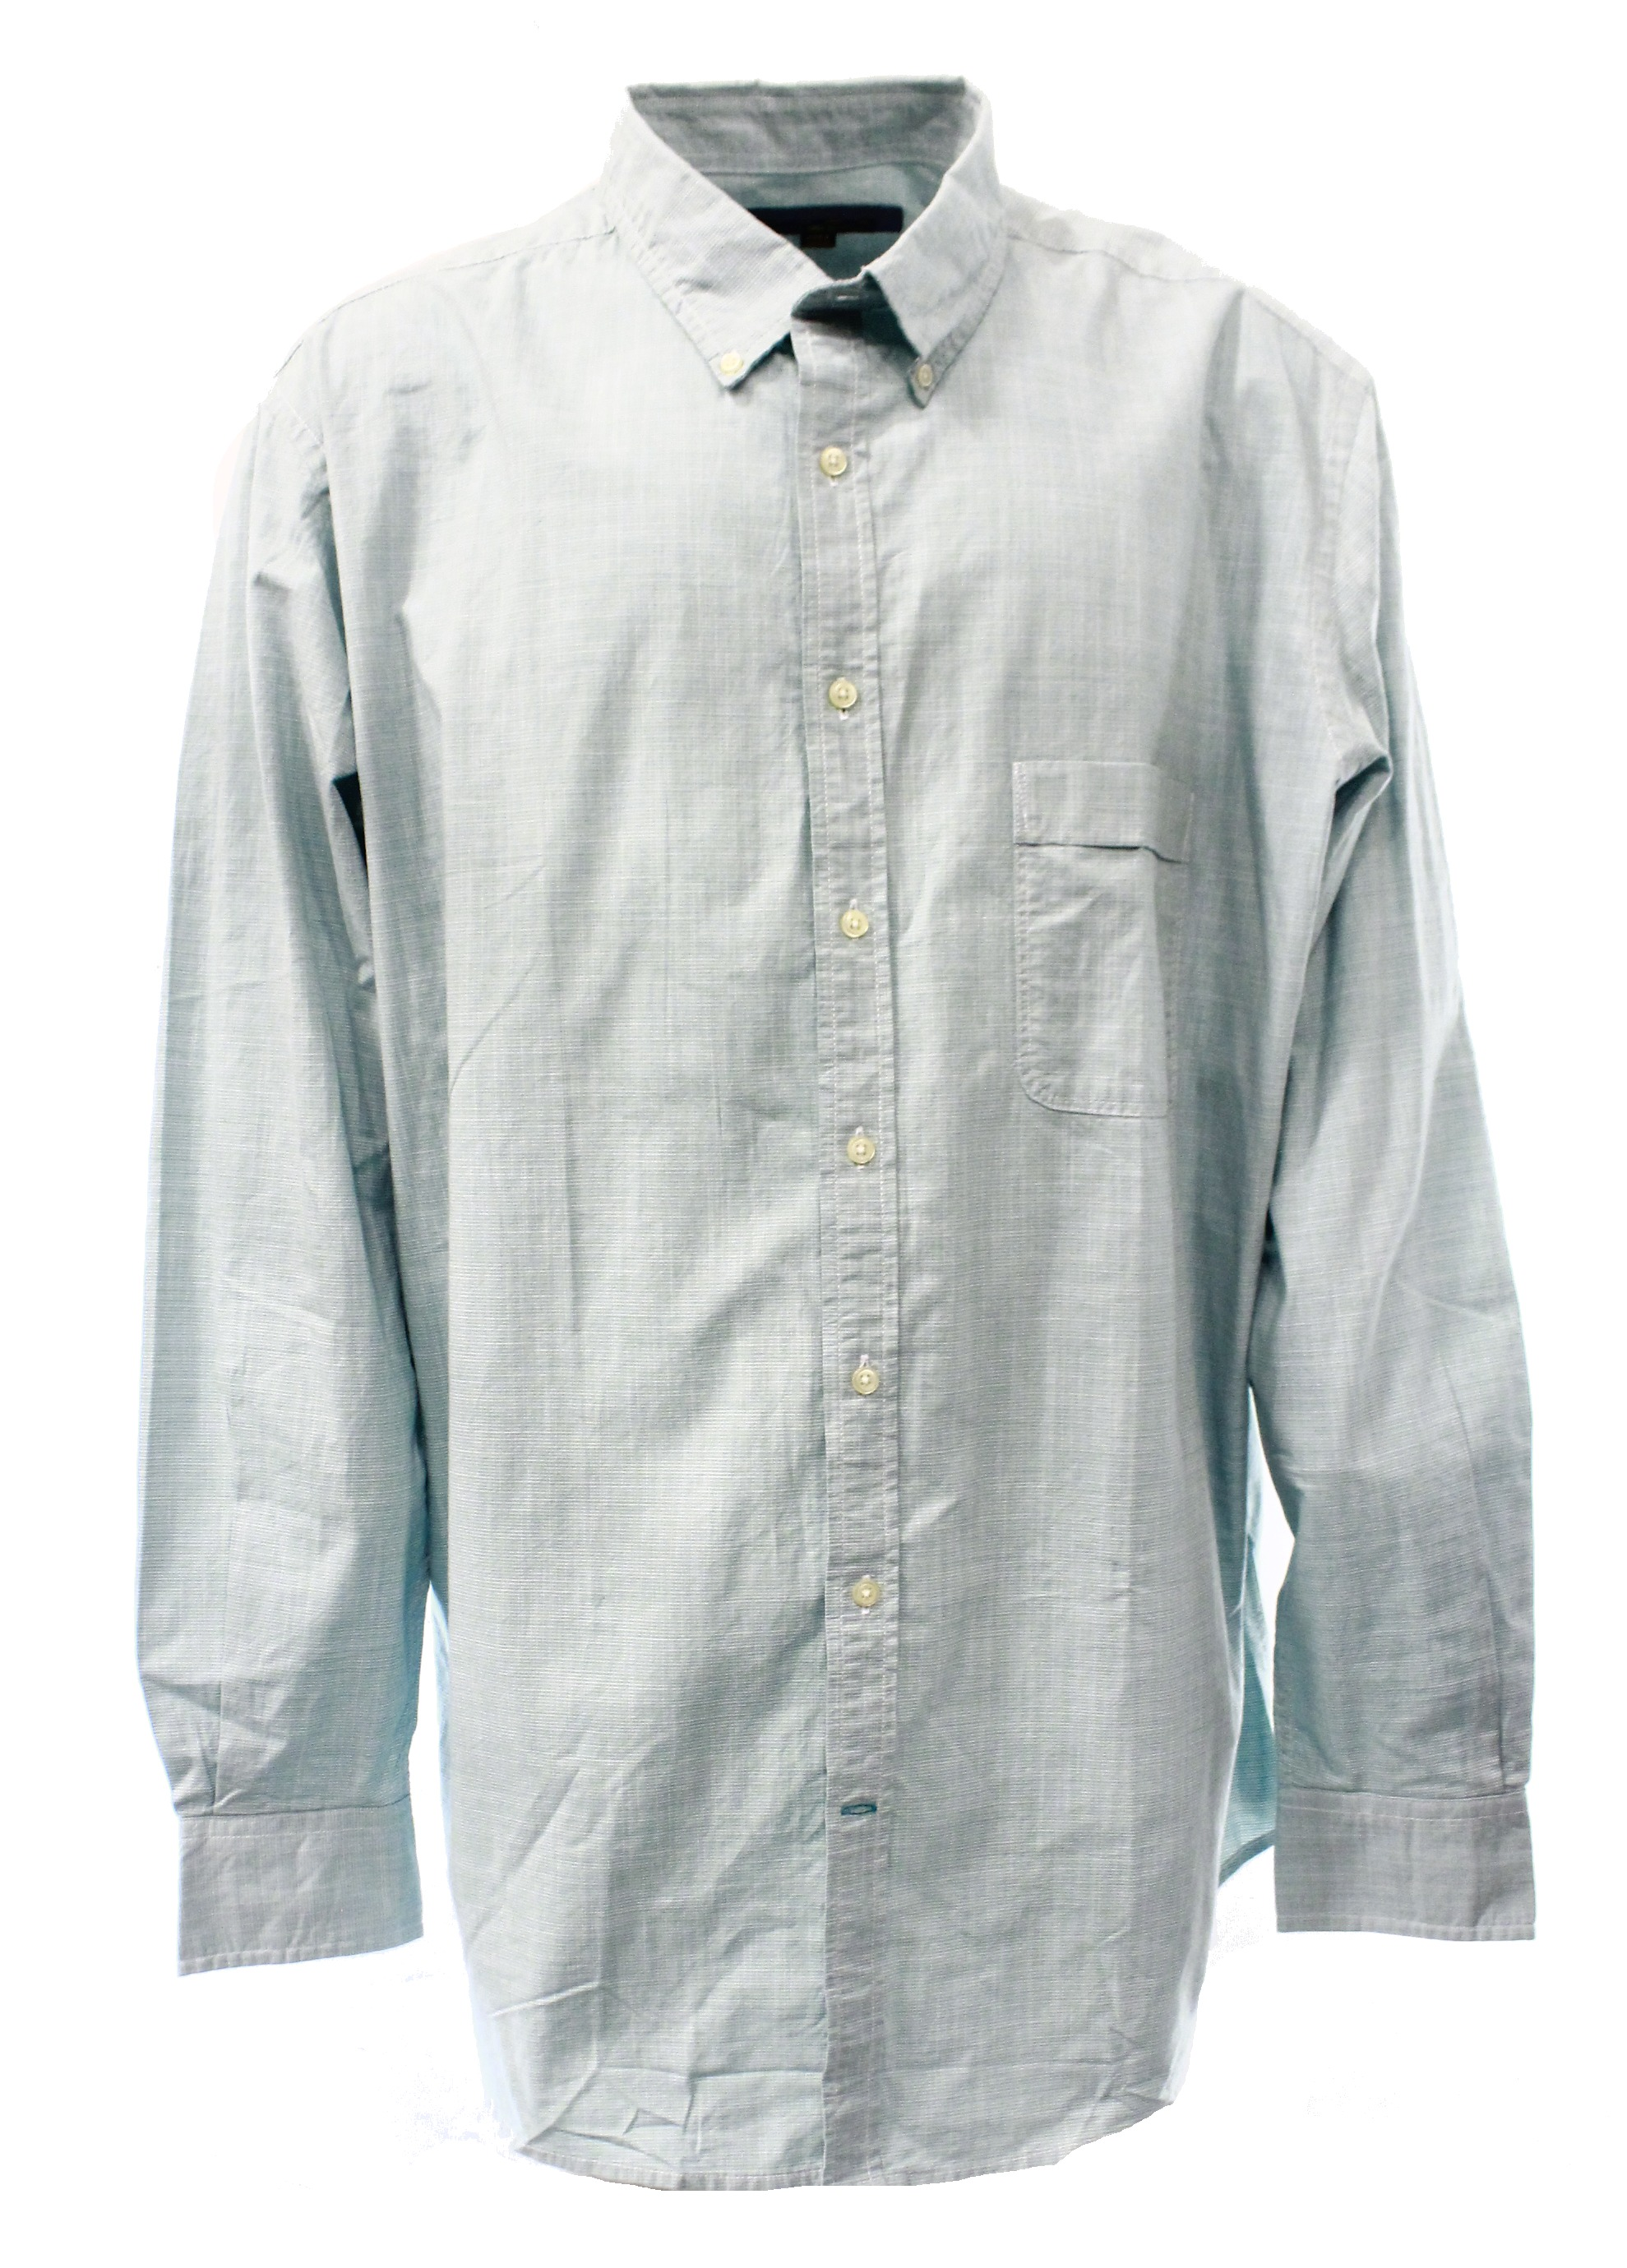 Club Room New Seafoam Teal Green Mens Size 2xlt Button